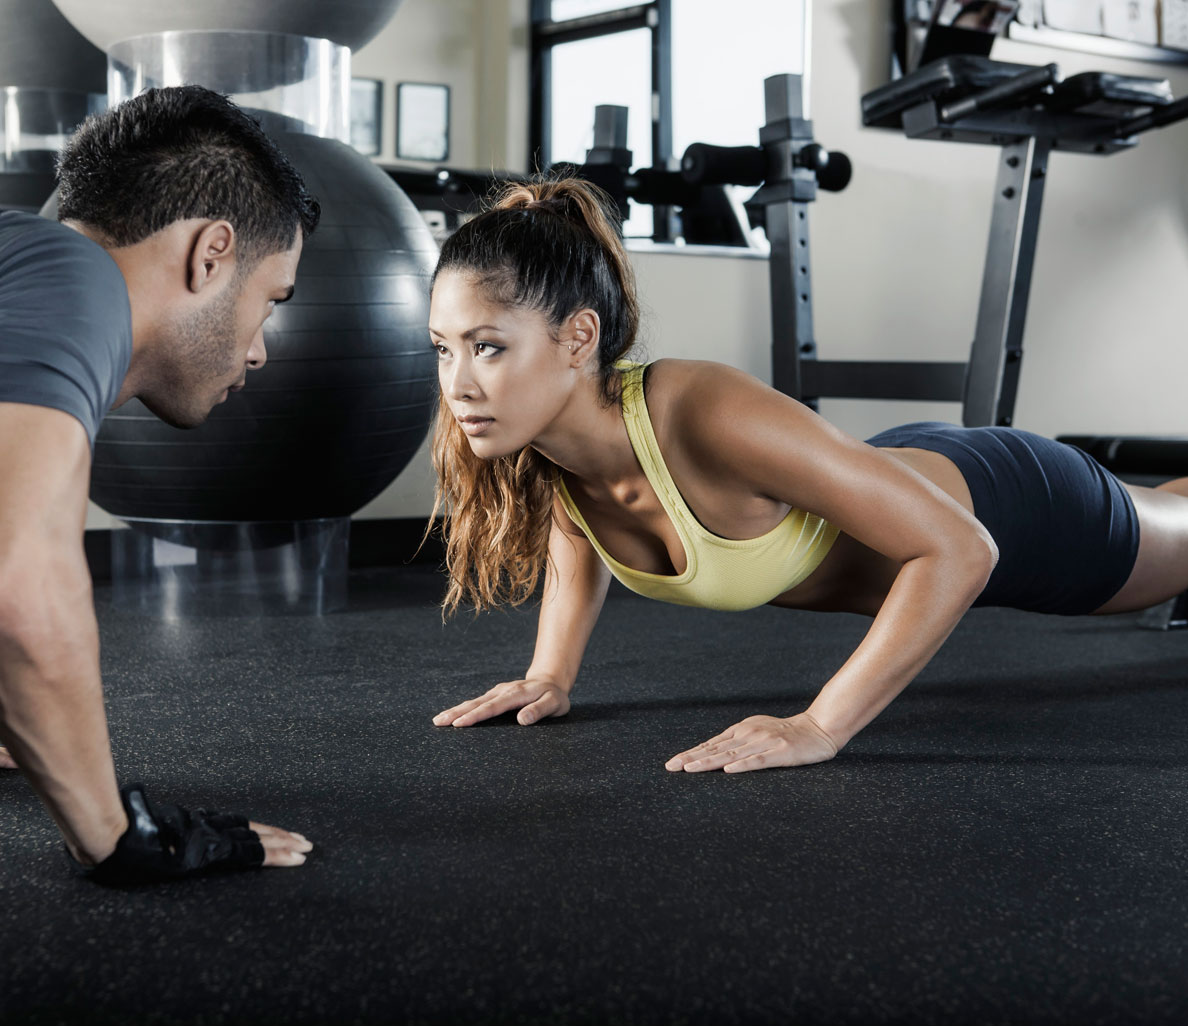 How to pick up women at the gym according to women muscle fitness ccuart